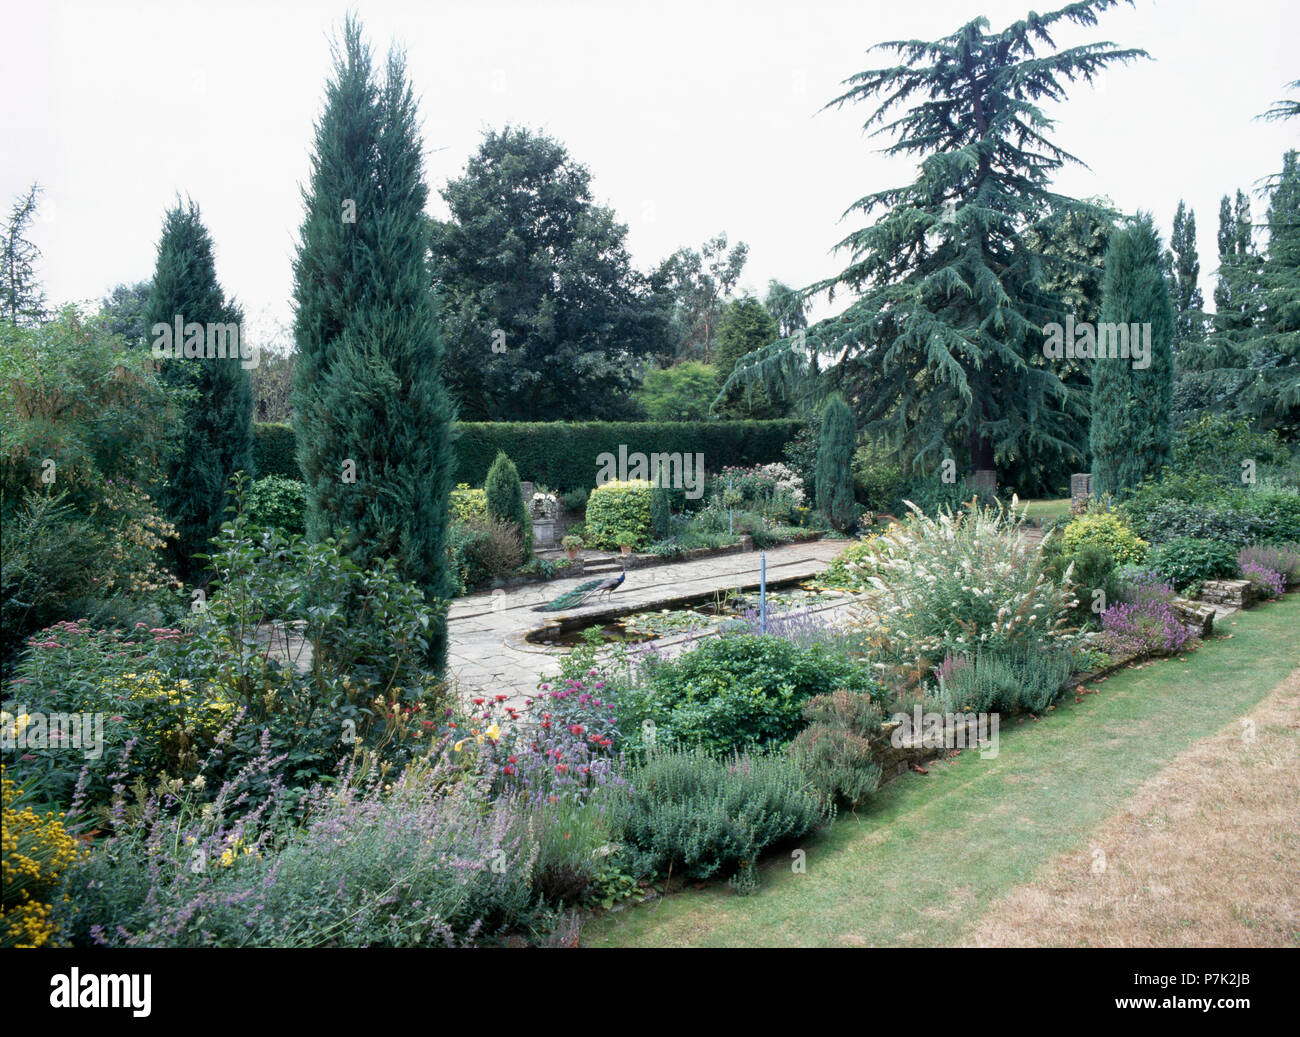 Fastigiate conifers and pond in large country garden - Stock Image